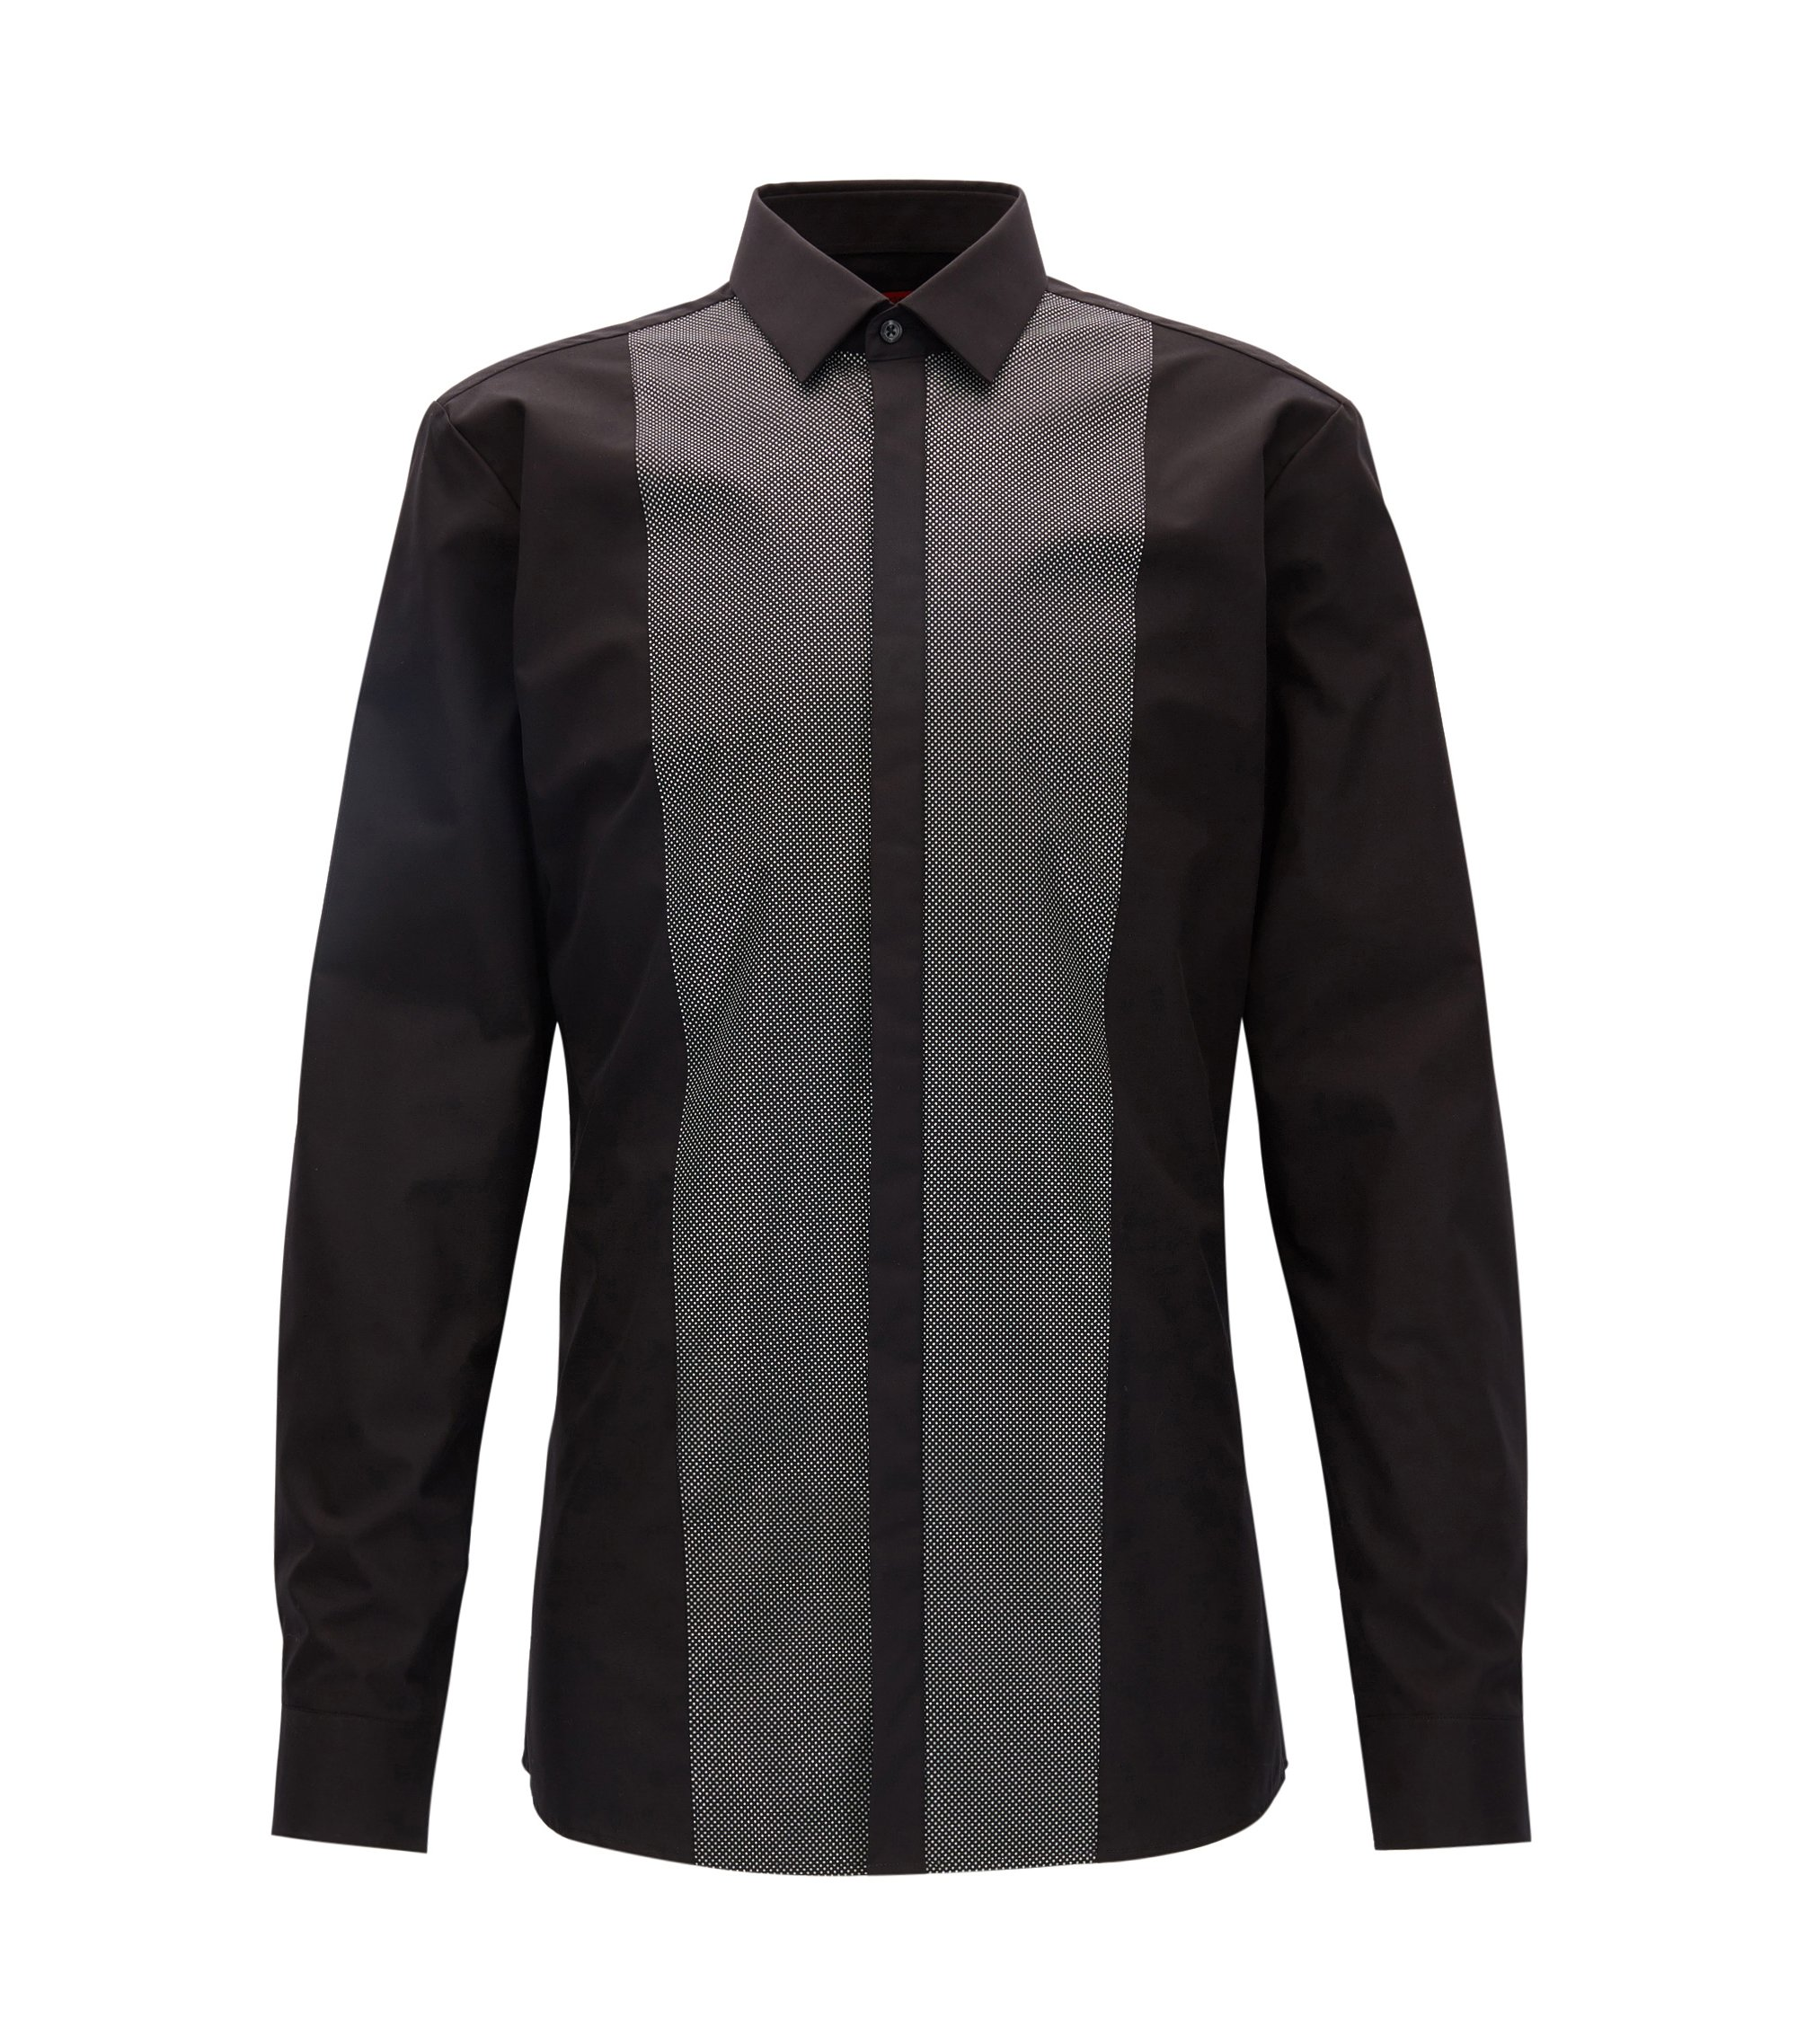 Metallic Print Easy Iron Dress Shirt, Extra-Slim Fit | Easto, Black